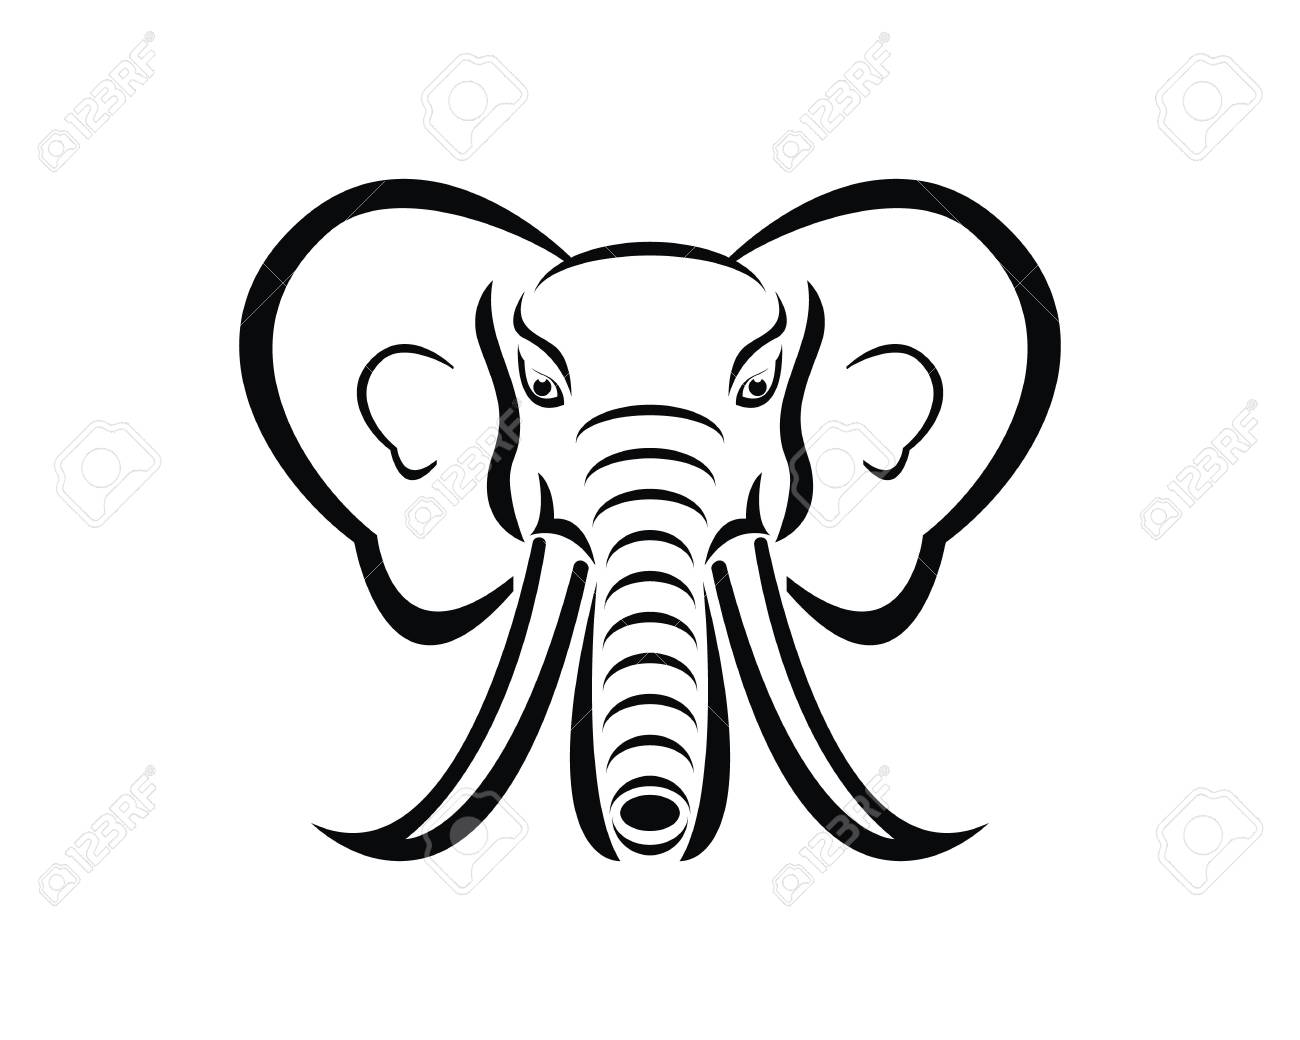 d2e537832 Elephant Logo Design Vector Illustration Royalty Free Cliparts ...